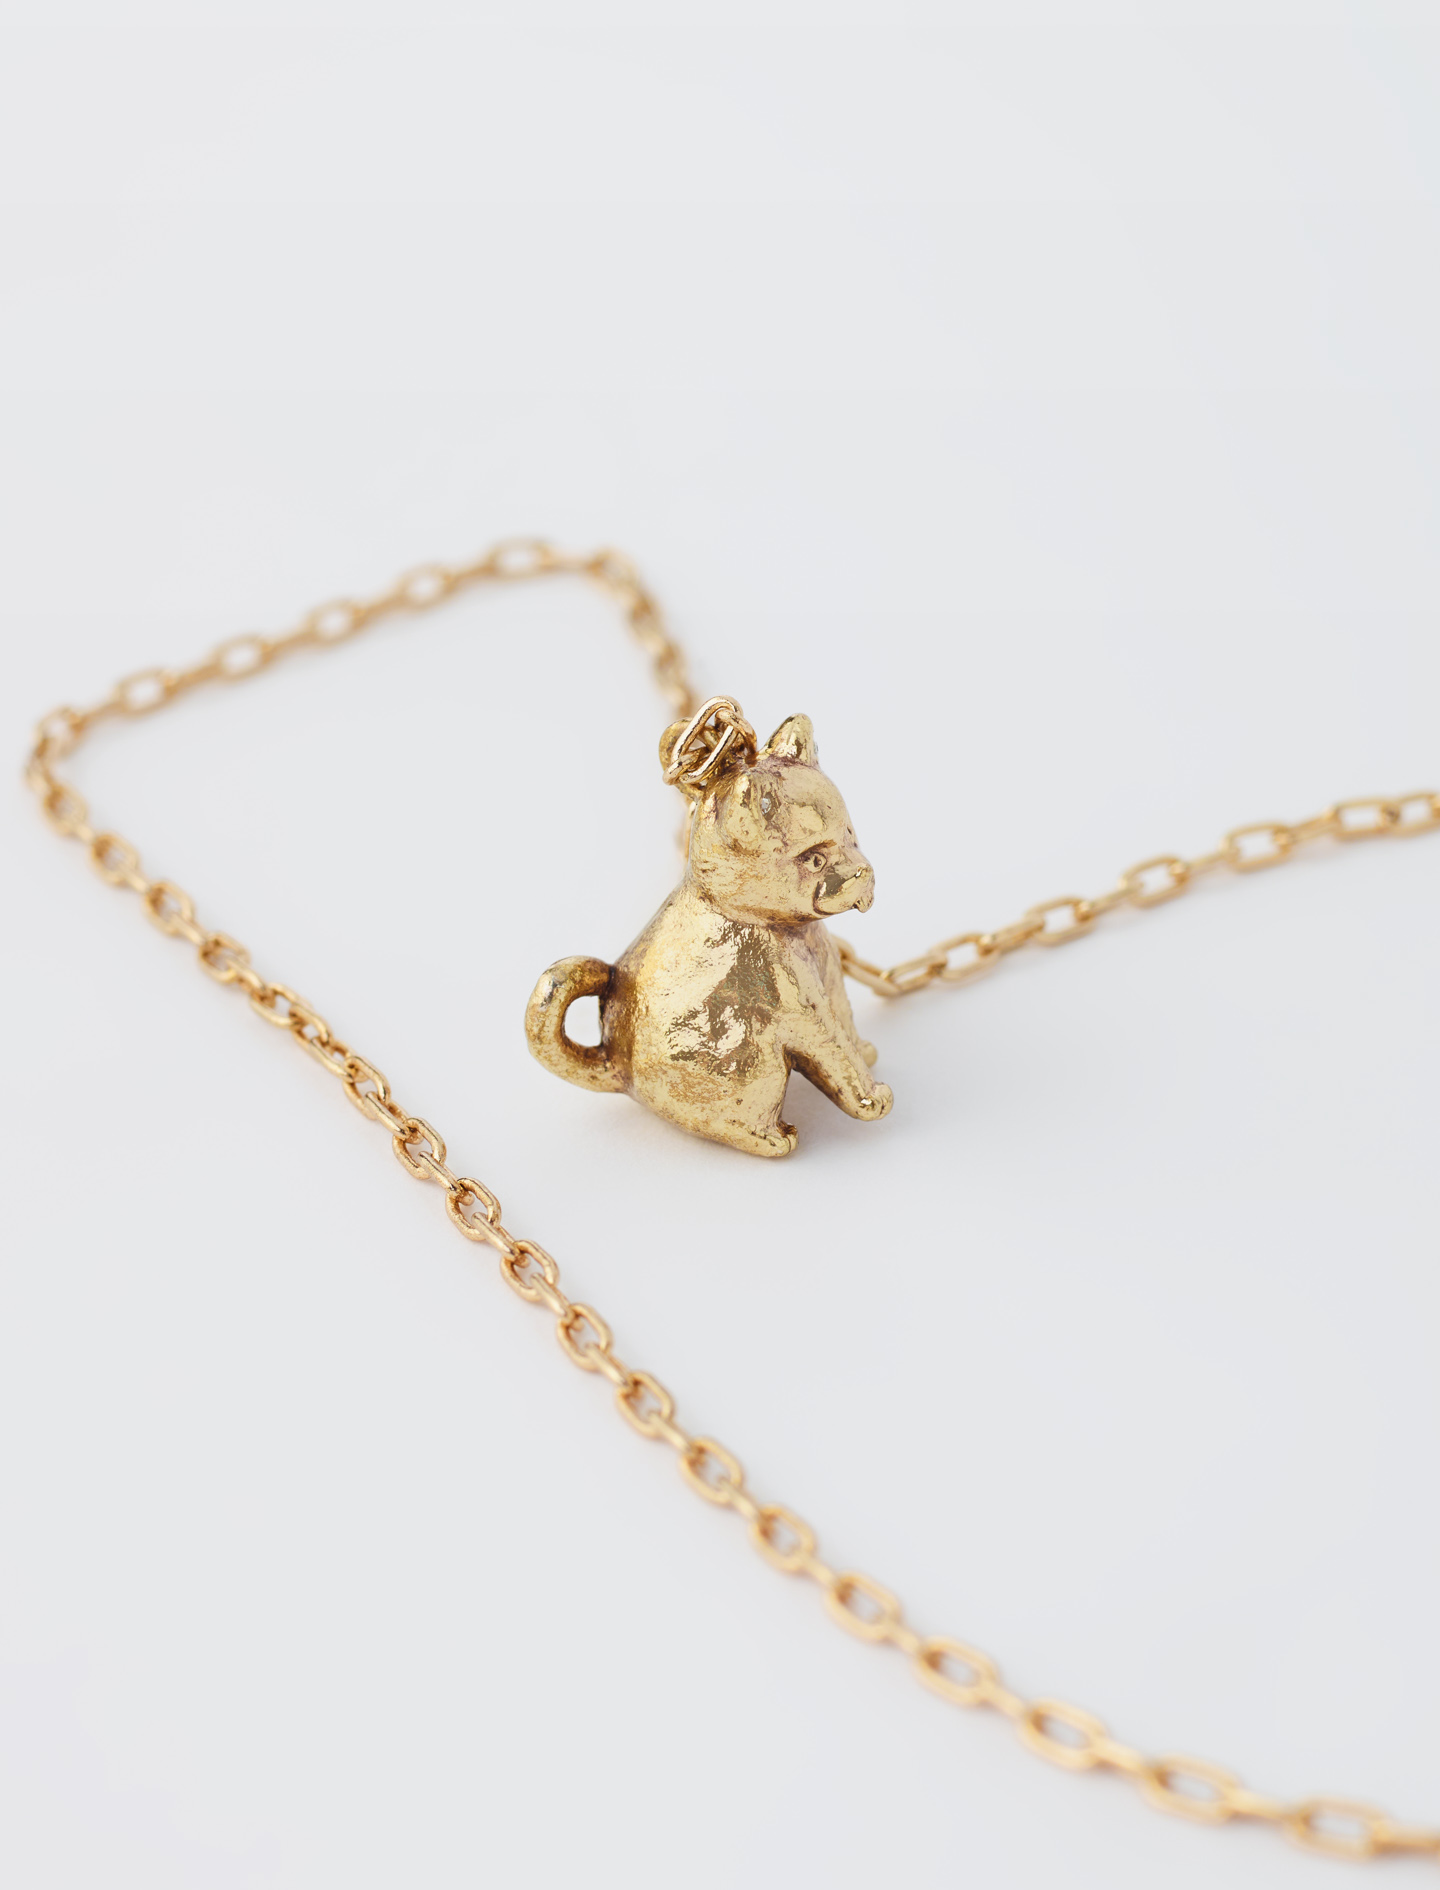 Gold necklace with dog by maje paris